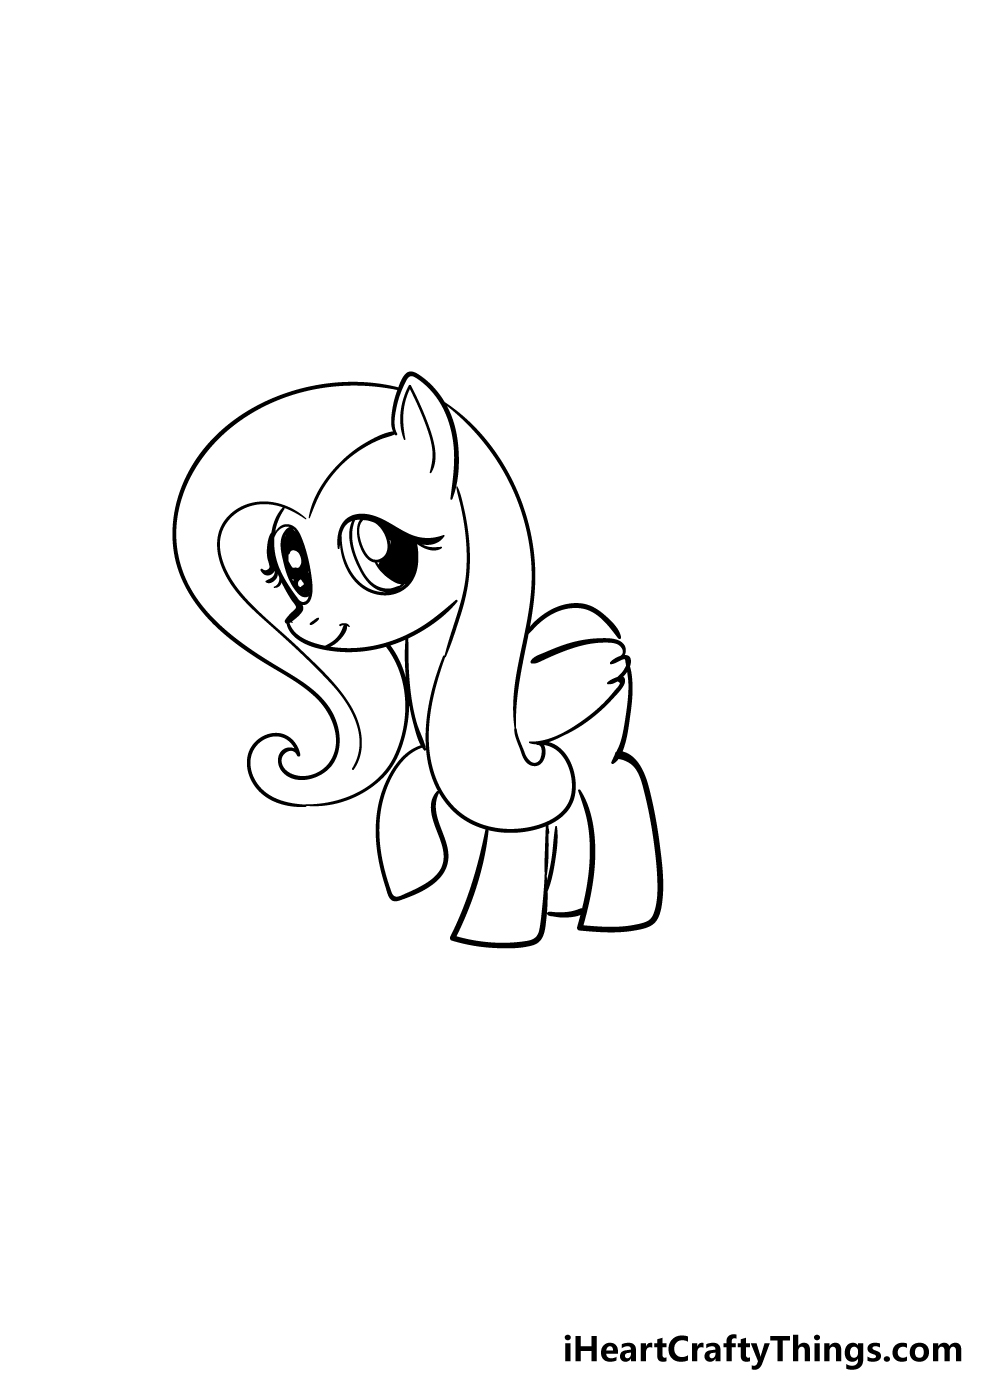 my little pony drawing step 5